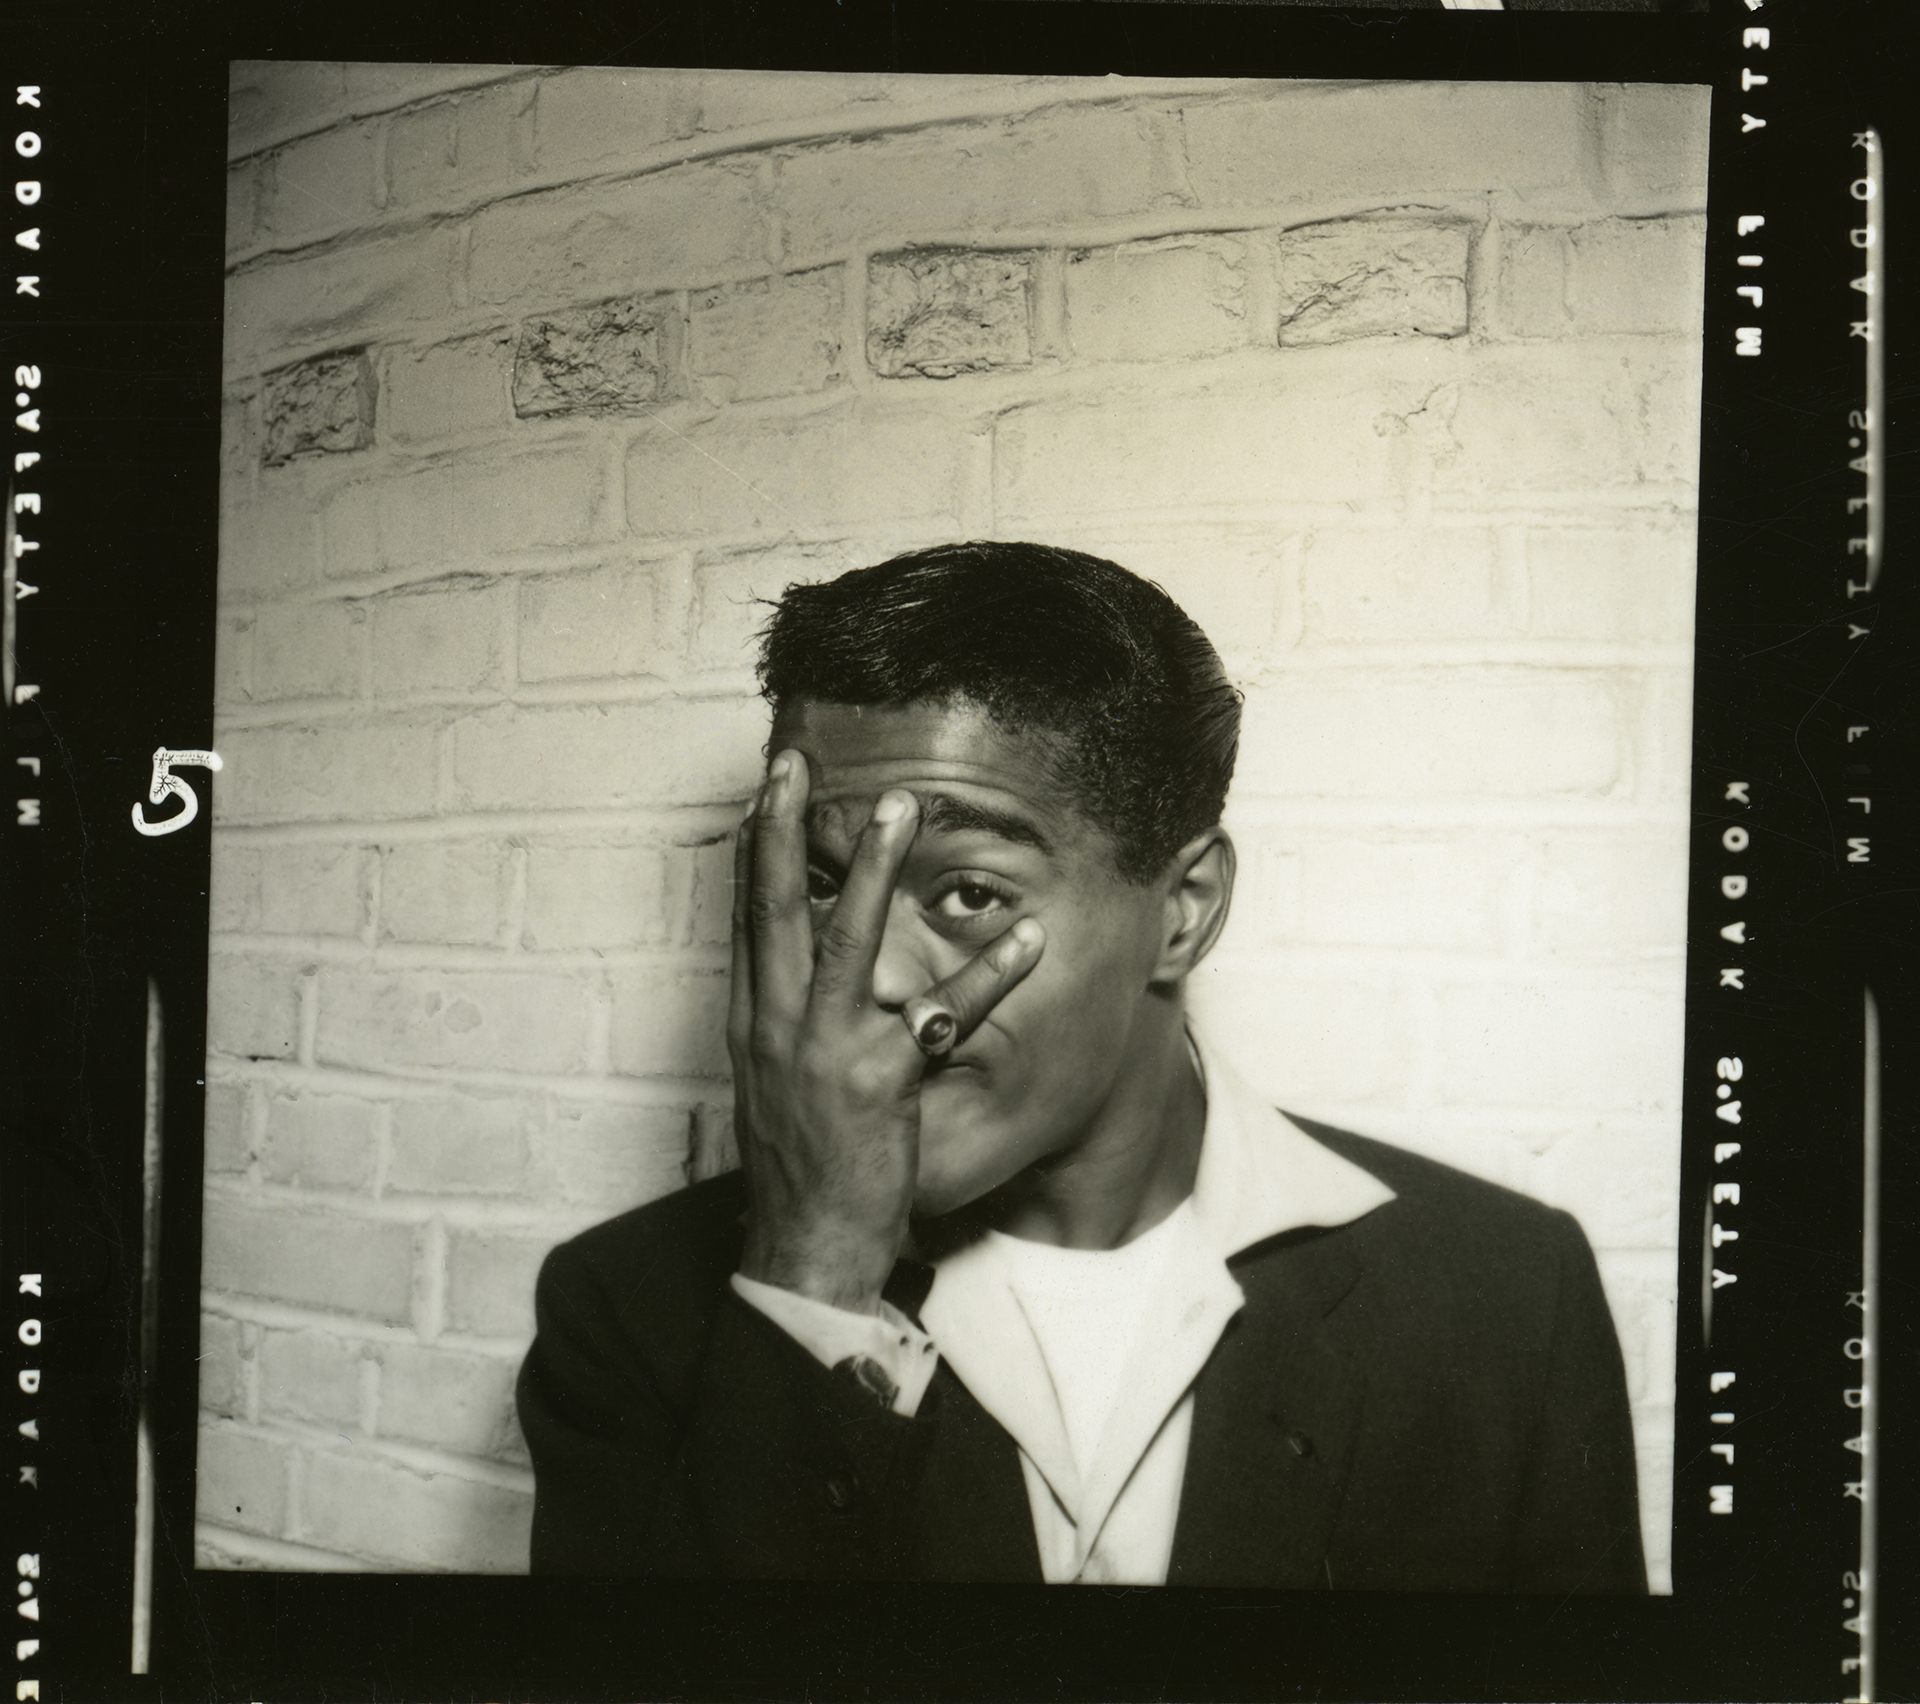 Sammy Davis, Jr. poses with his hand on his face